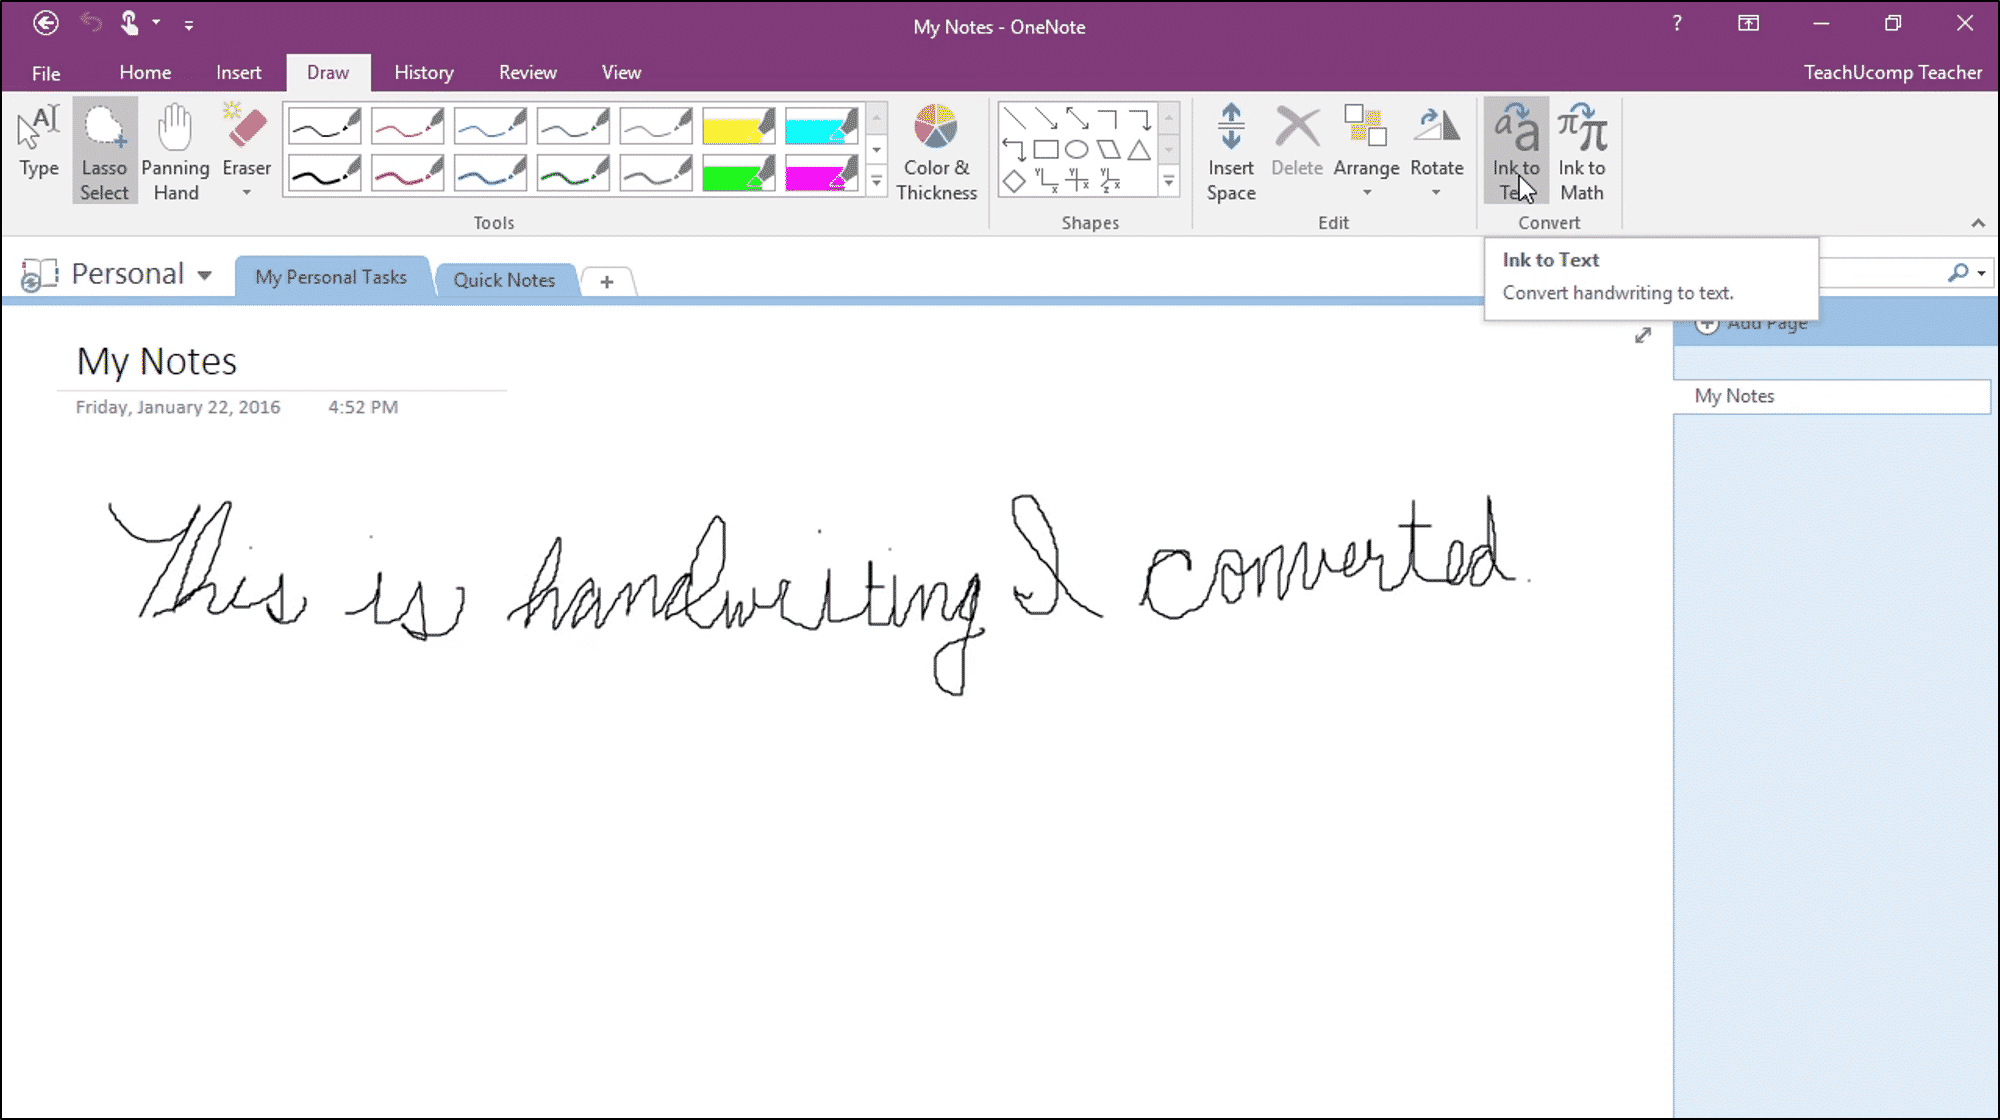 Convert Handwriting to Text in OneNote - Instructions